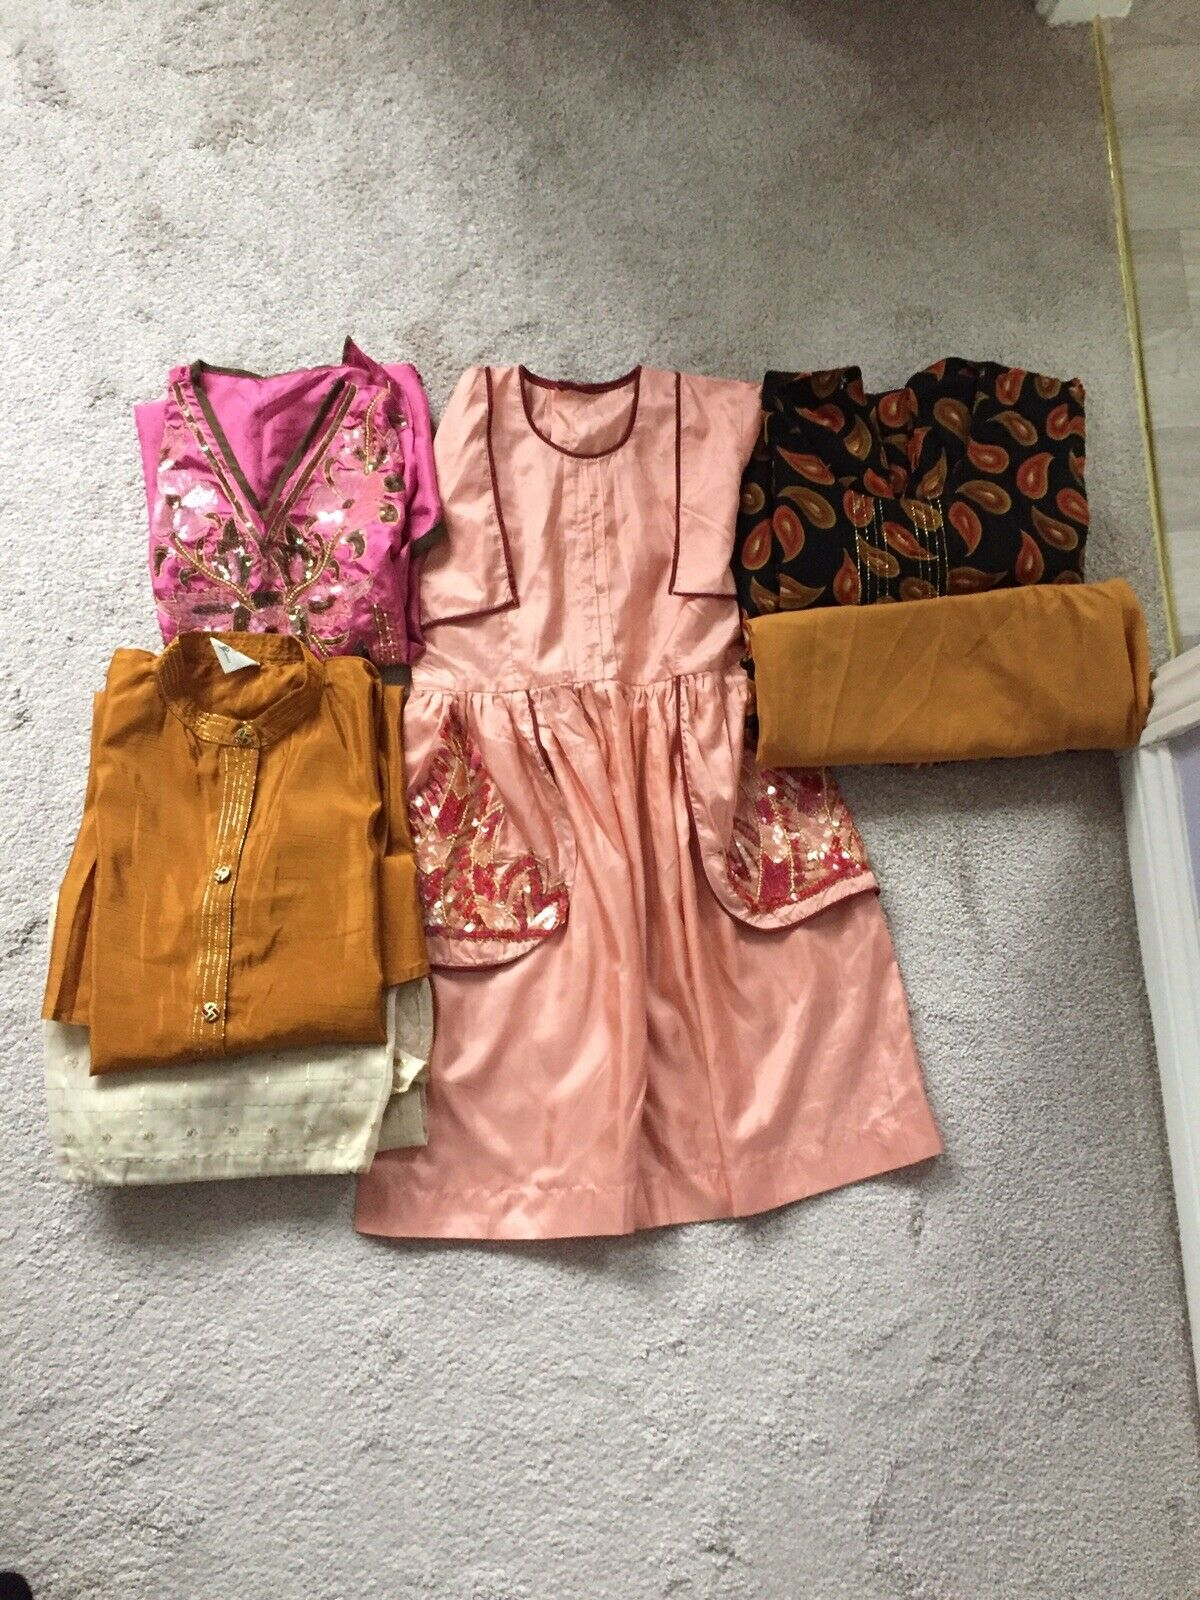 4 Indian Outfits Suitable For Ages 9 To 12 For